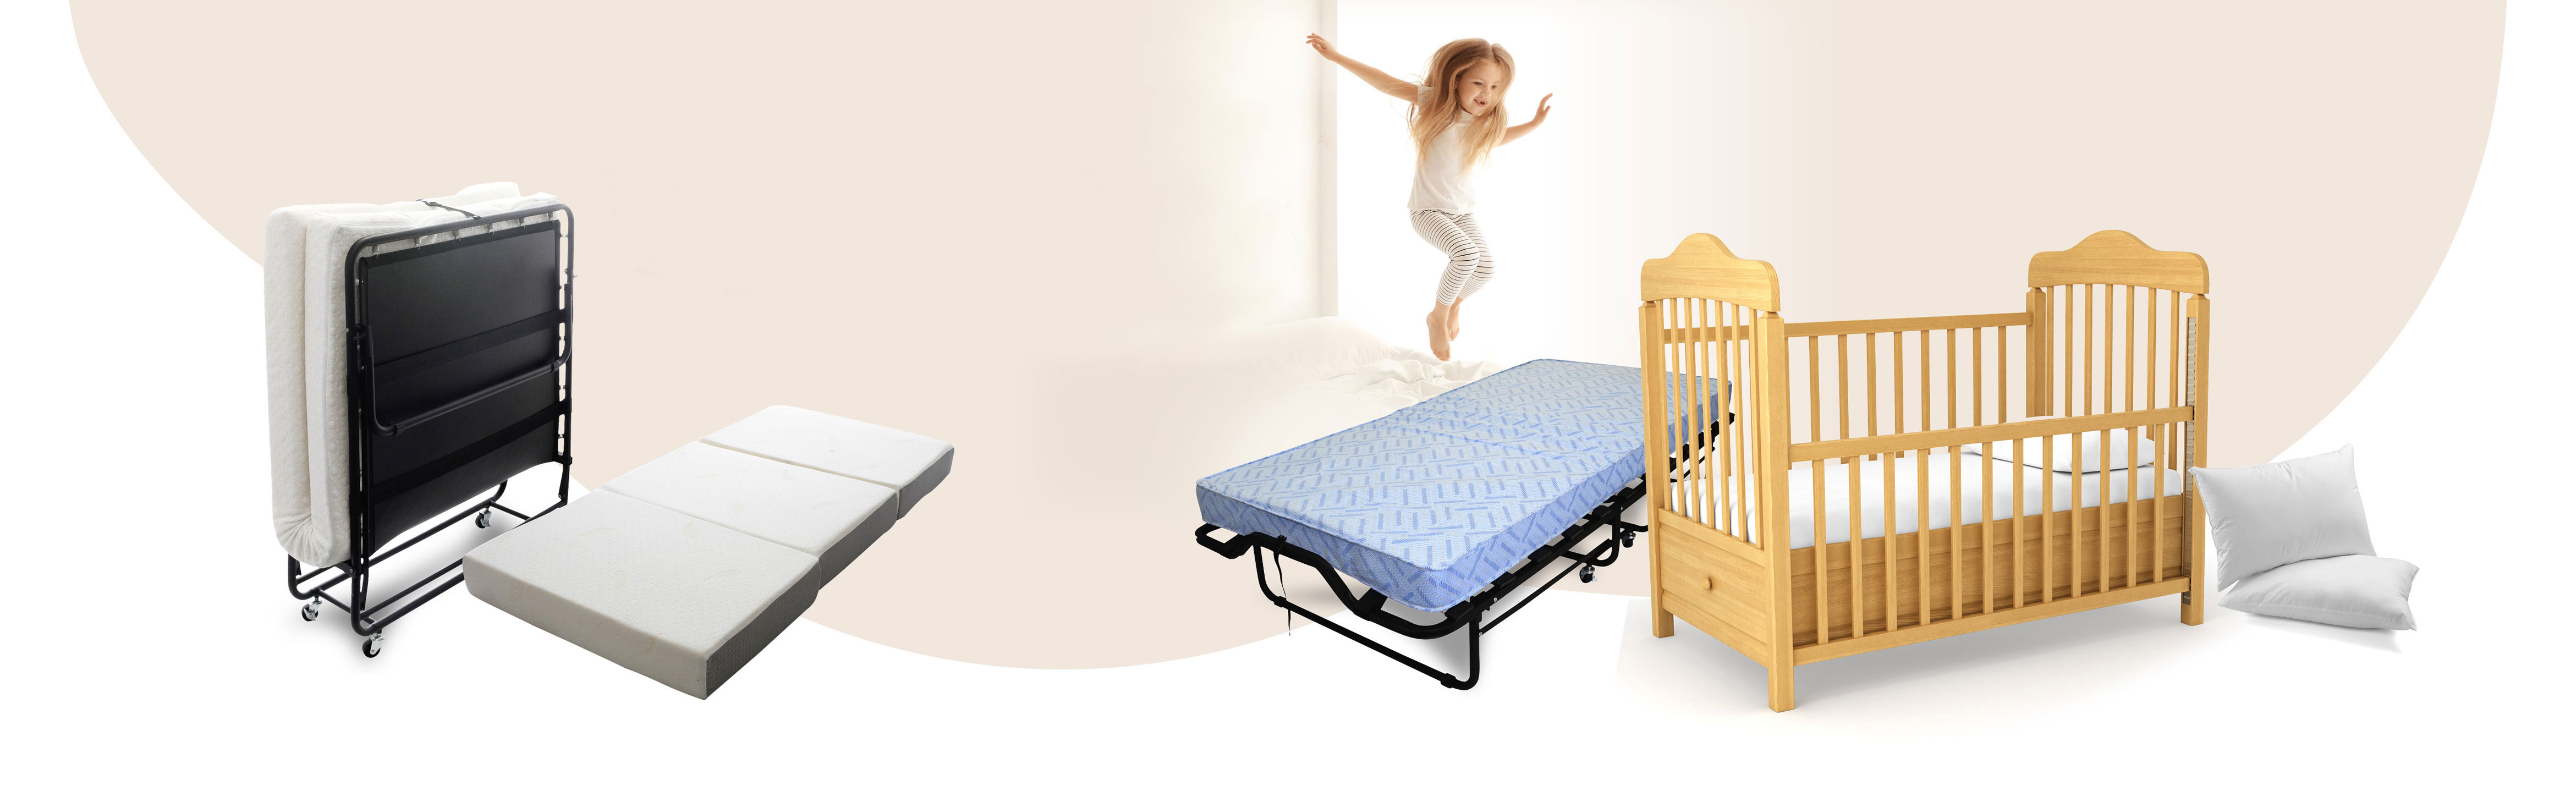 Don't Compromise Sleep Comfy Many categories of products to help you sleep better